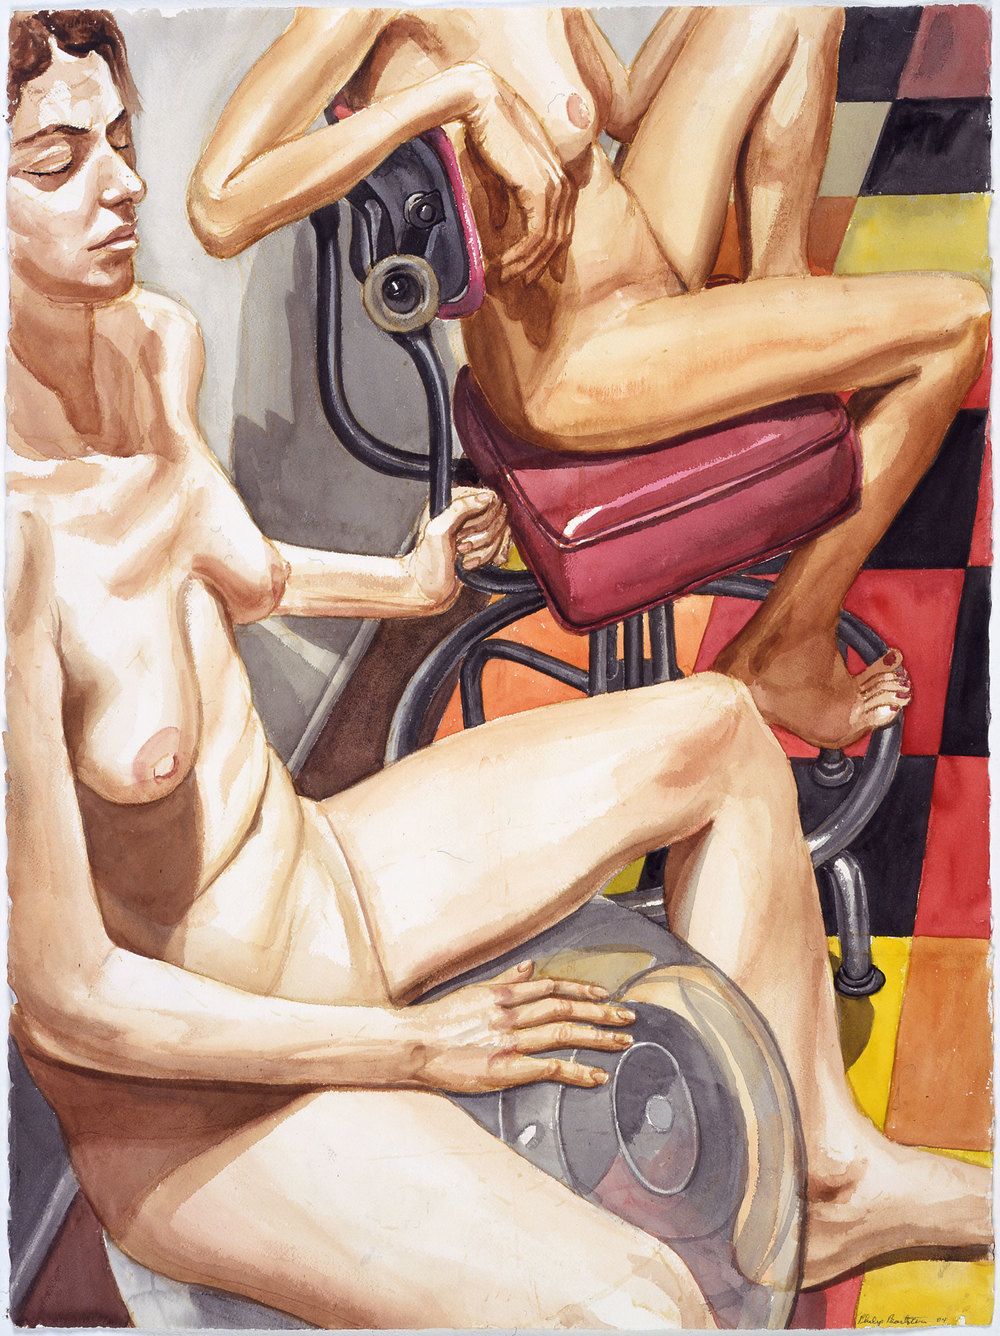 TWO NUDES, EXERCISE BALL AND OLD OFFICE CHAIR , 2005 Watercolor on paper 30 x 22 1/4 inches